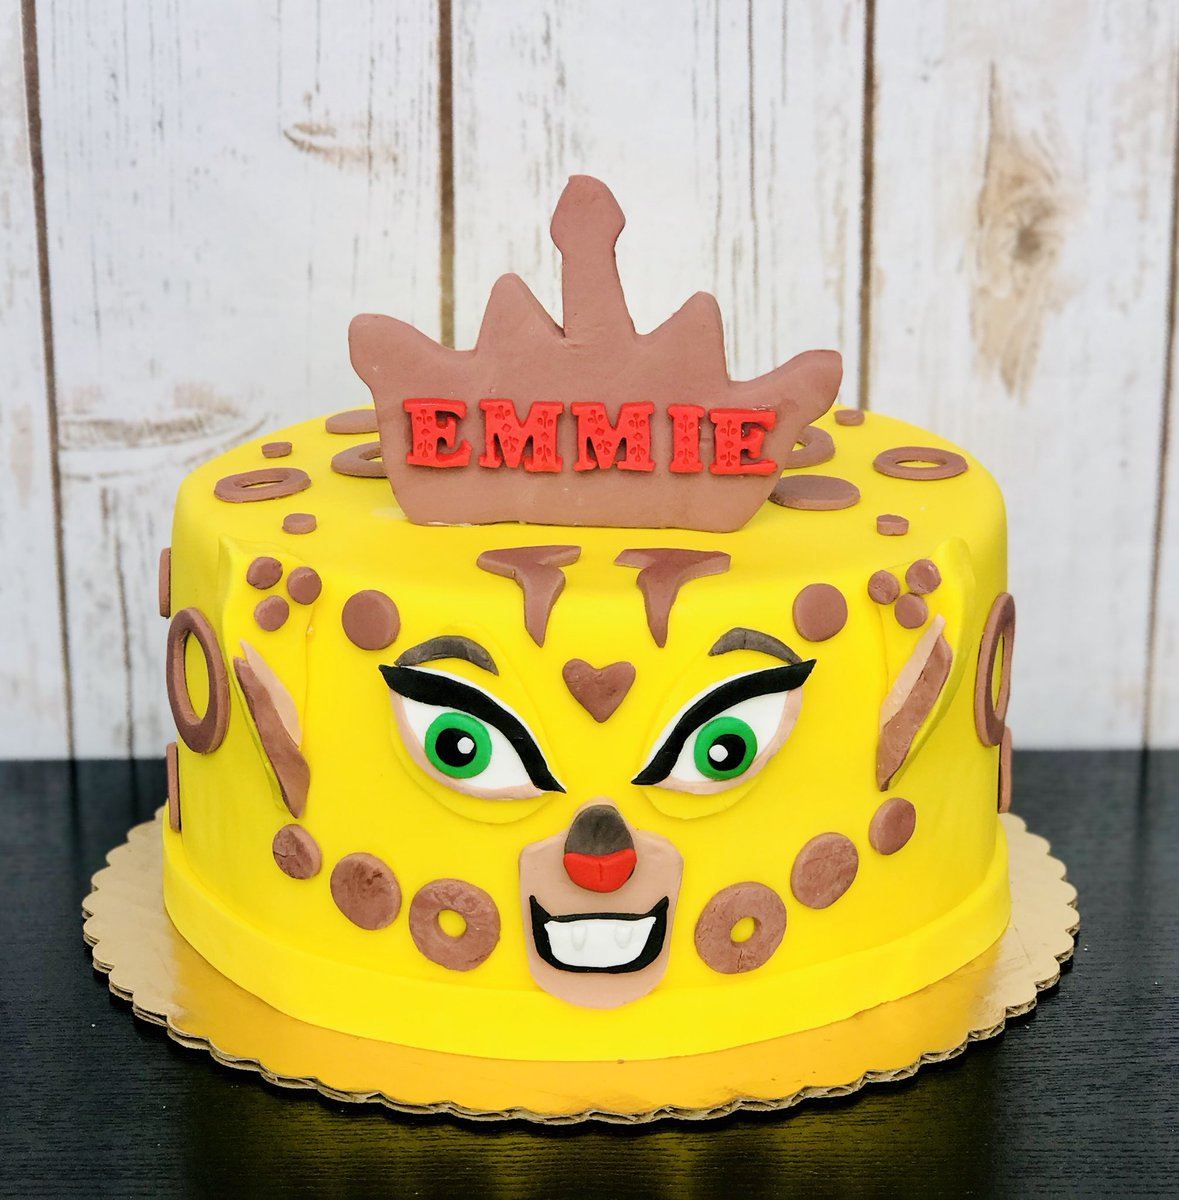 Outstanding Benibakery A Twitter Cheetah Themed Cake Happy 6Th Birthday Personalised Birthday Cards Petedlily Jamesorg